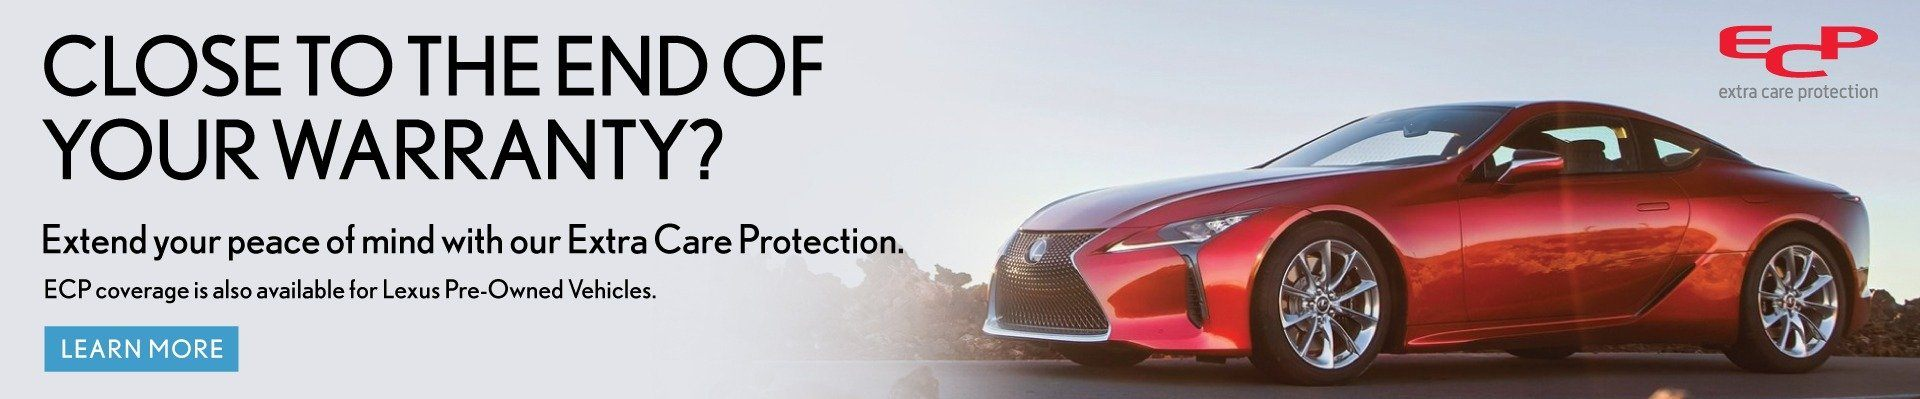 EXTEND EXTRA CARE PROTECTION  AT KEN SHAW LEXUS IN TORONTO ONTARIO